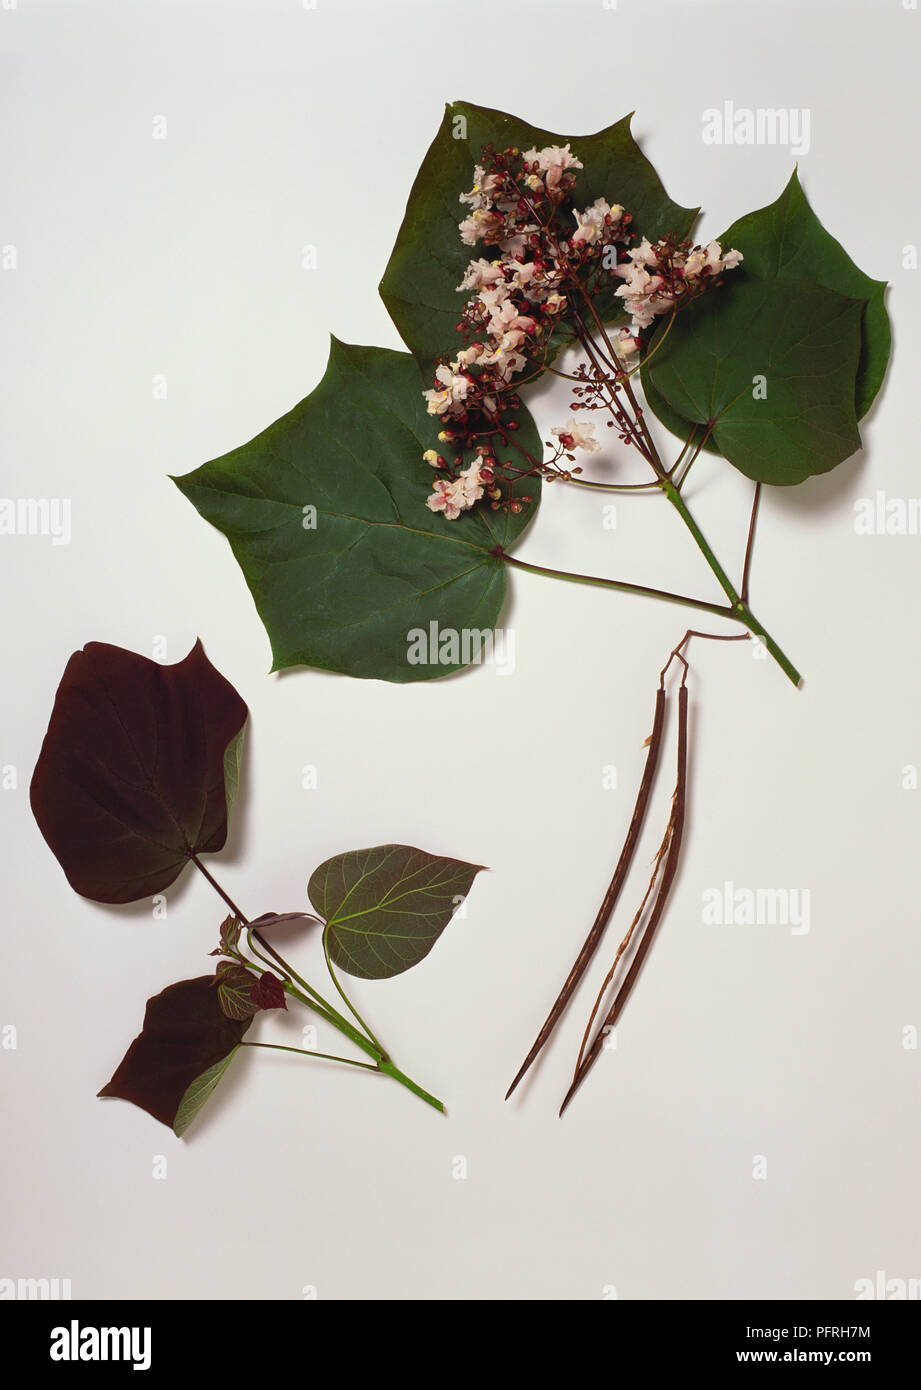 Catalpa x erubescens, stem with leaves and flowers, two pods, and a stem from the cultivar 'Purpurea' - Stock Image